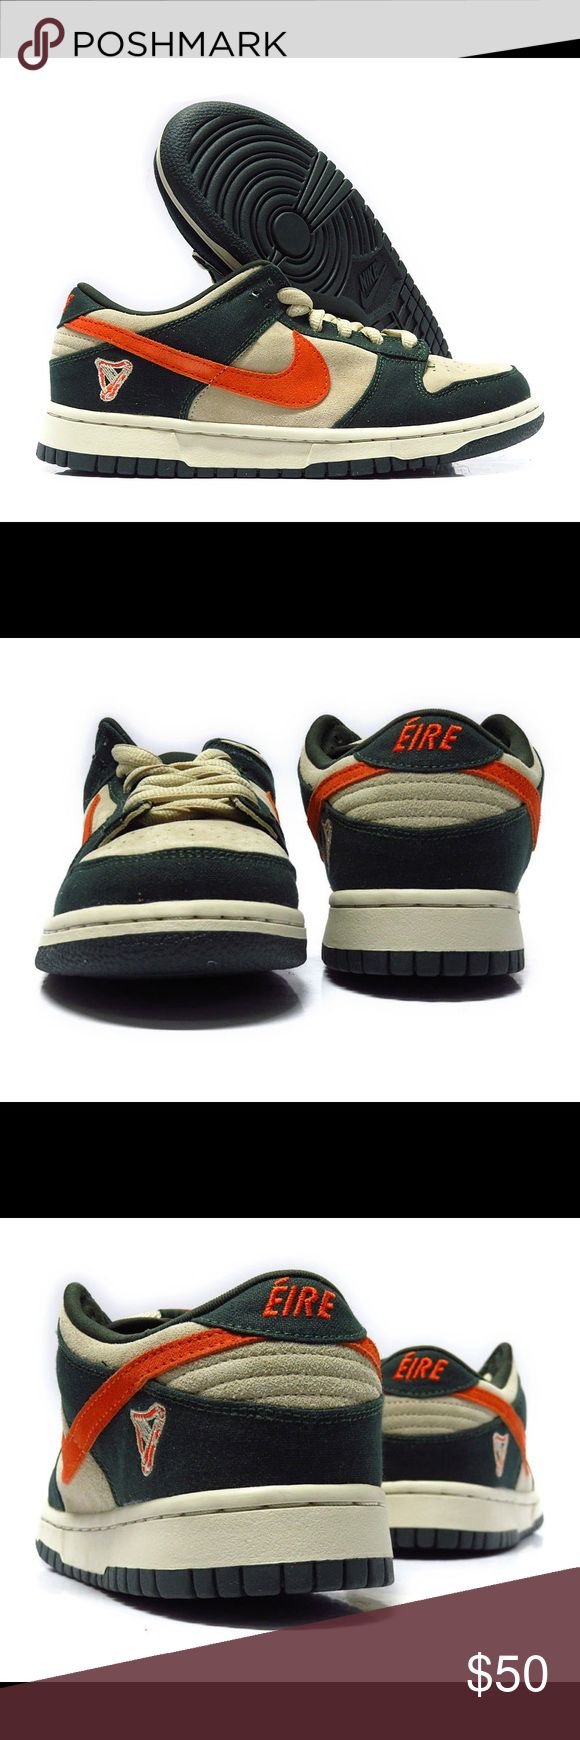 competitive price 7fc55 f80e8 do nike dunk sb fit true to size